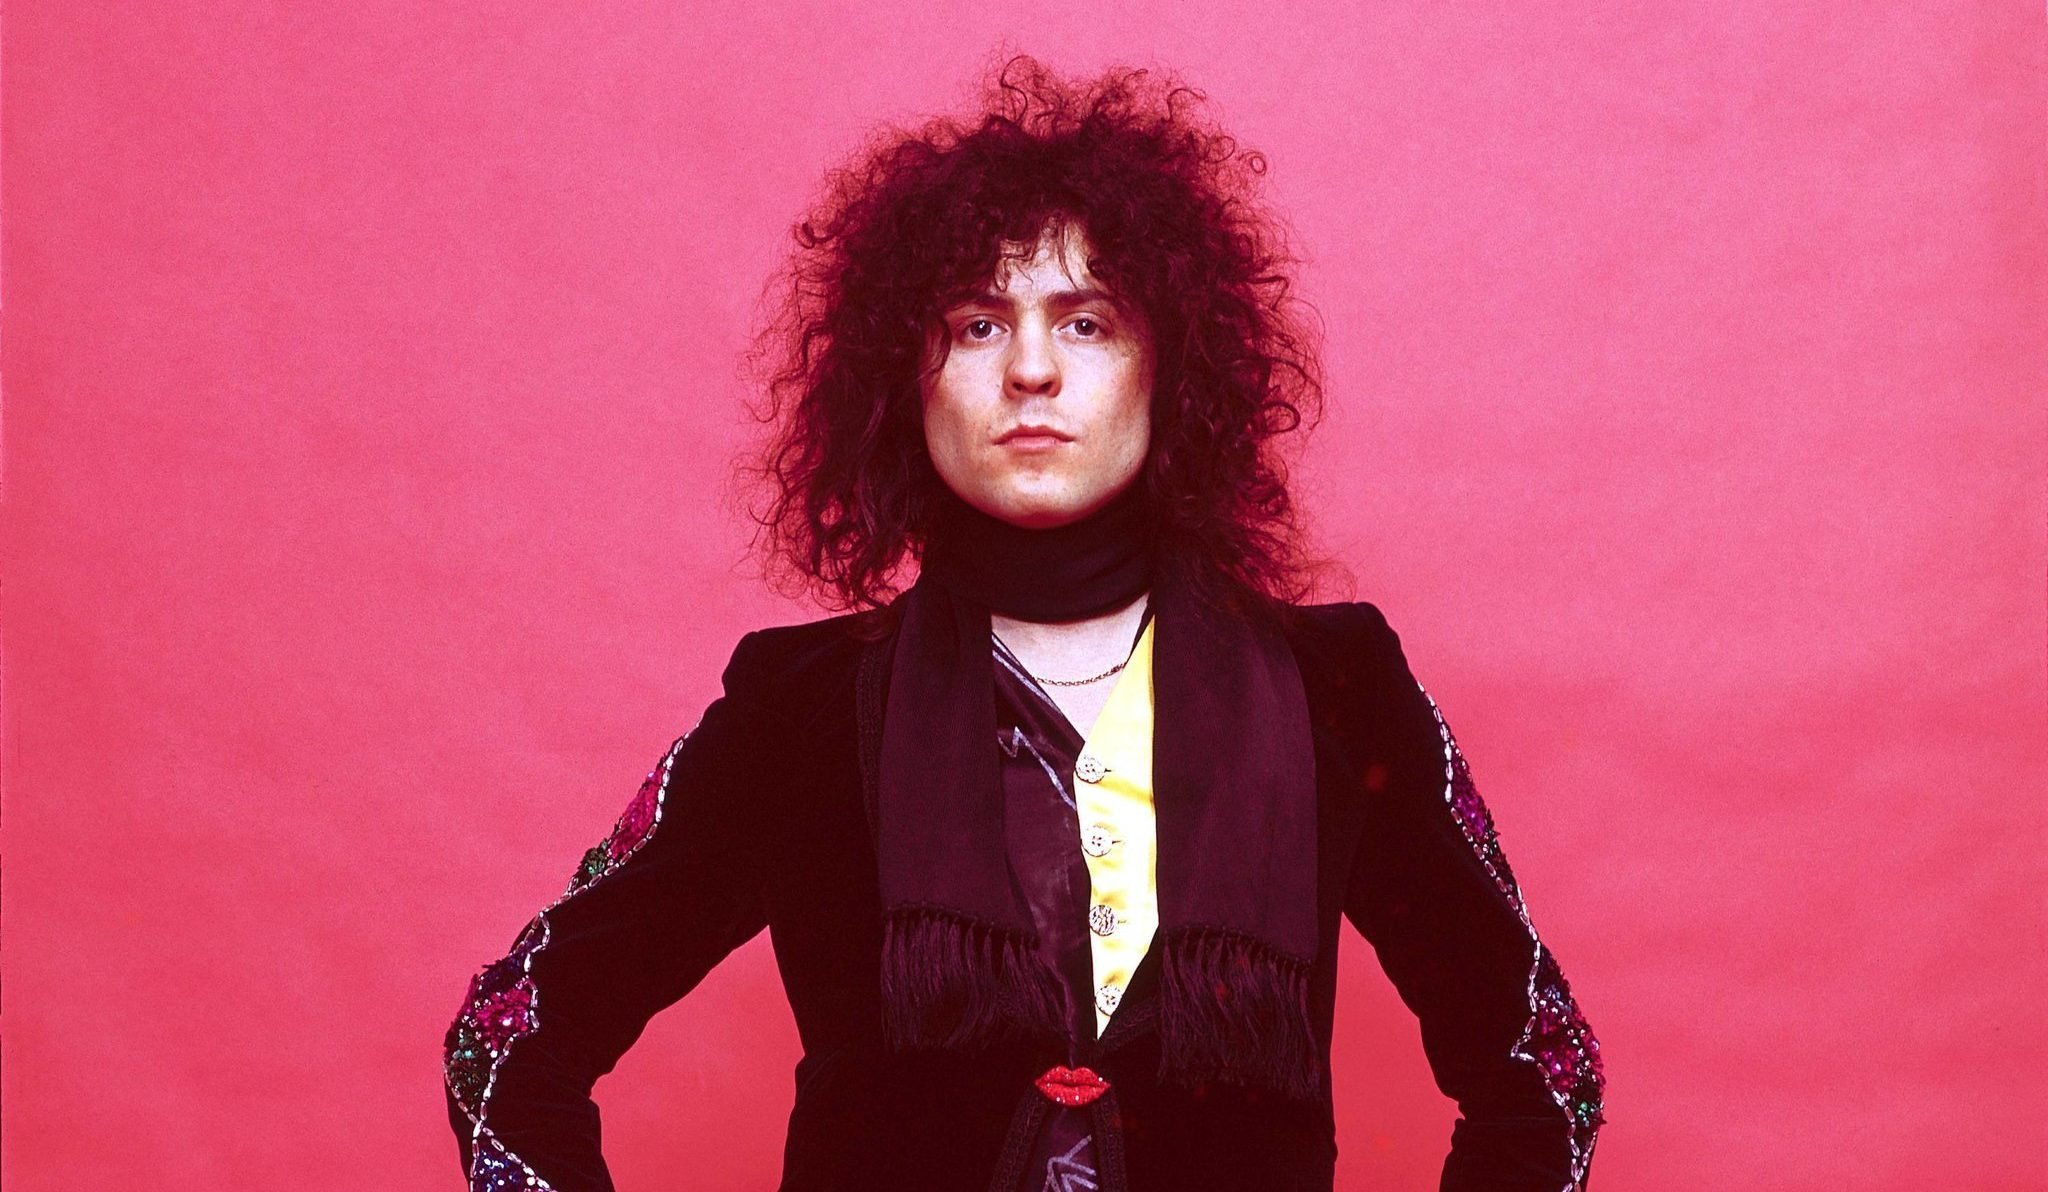 Podcast: Dystopian Book Club vs. Mark Paytress' Bolan: The Rise and Fall of a 20th Century Superstar